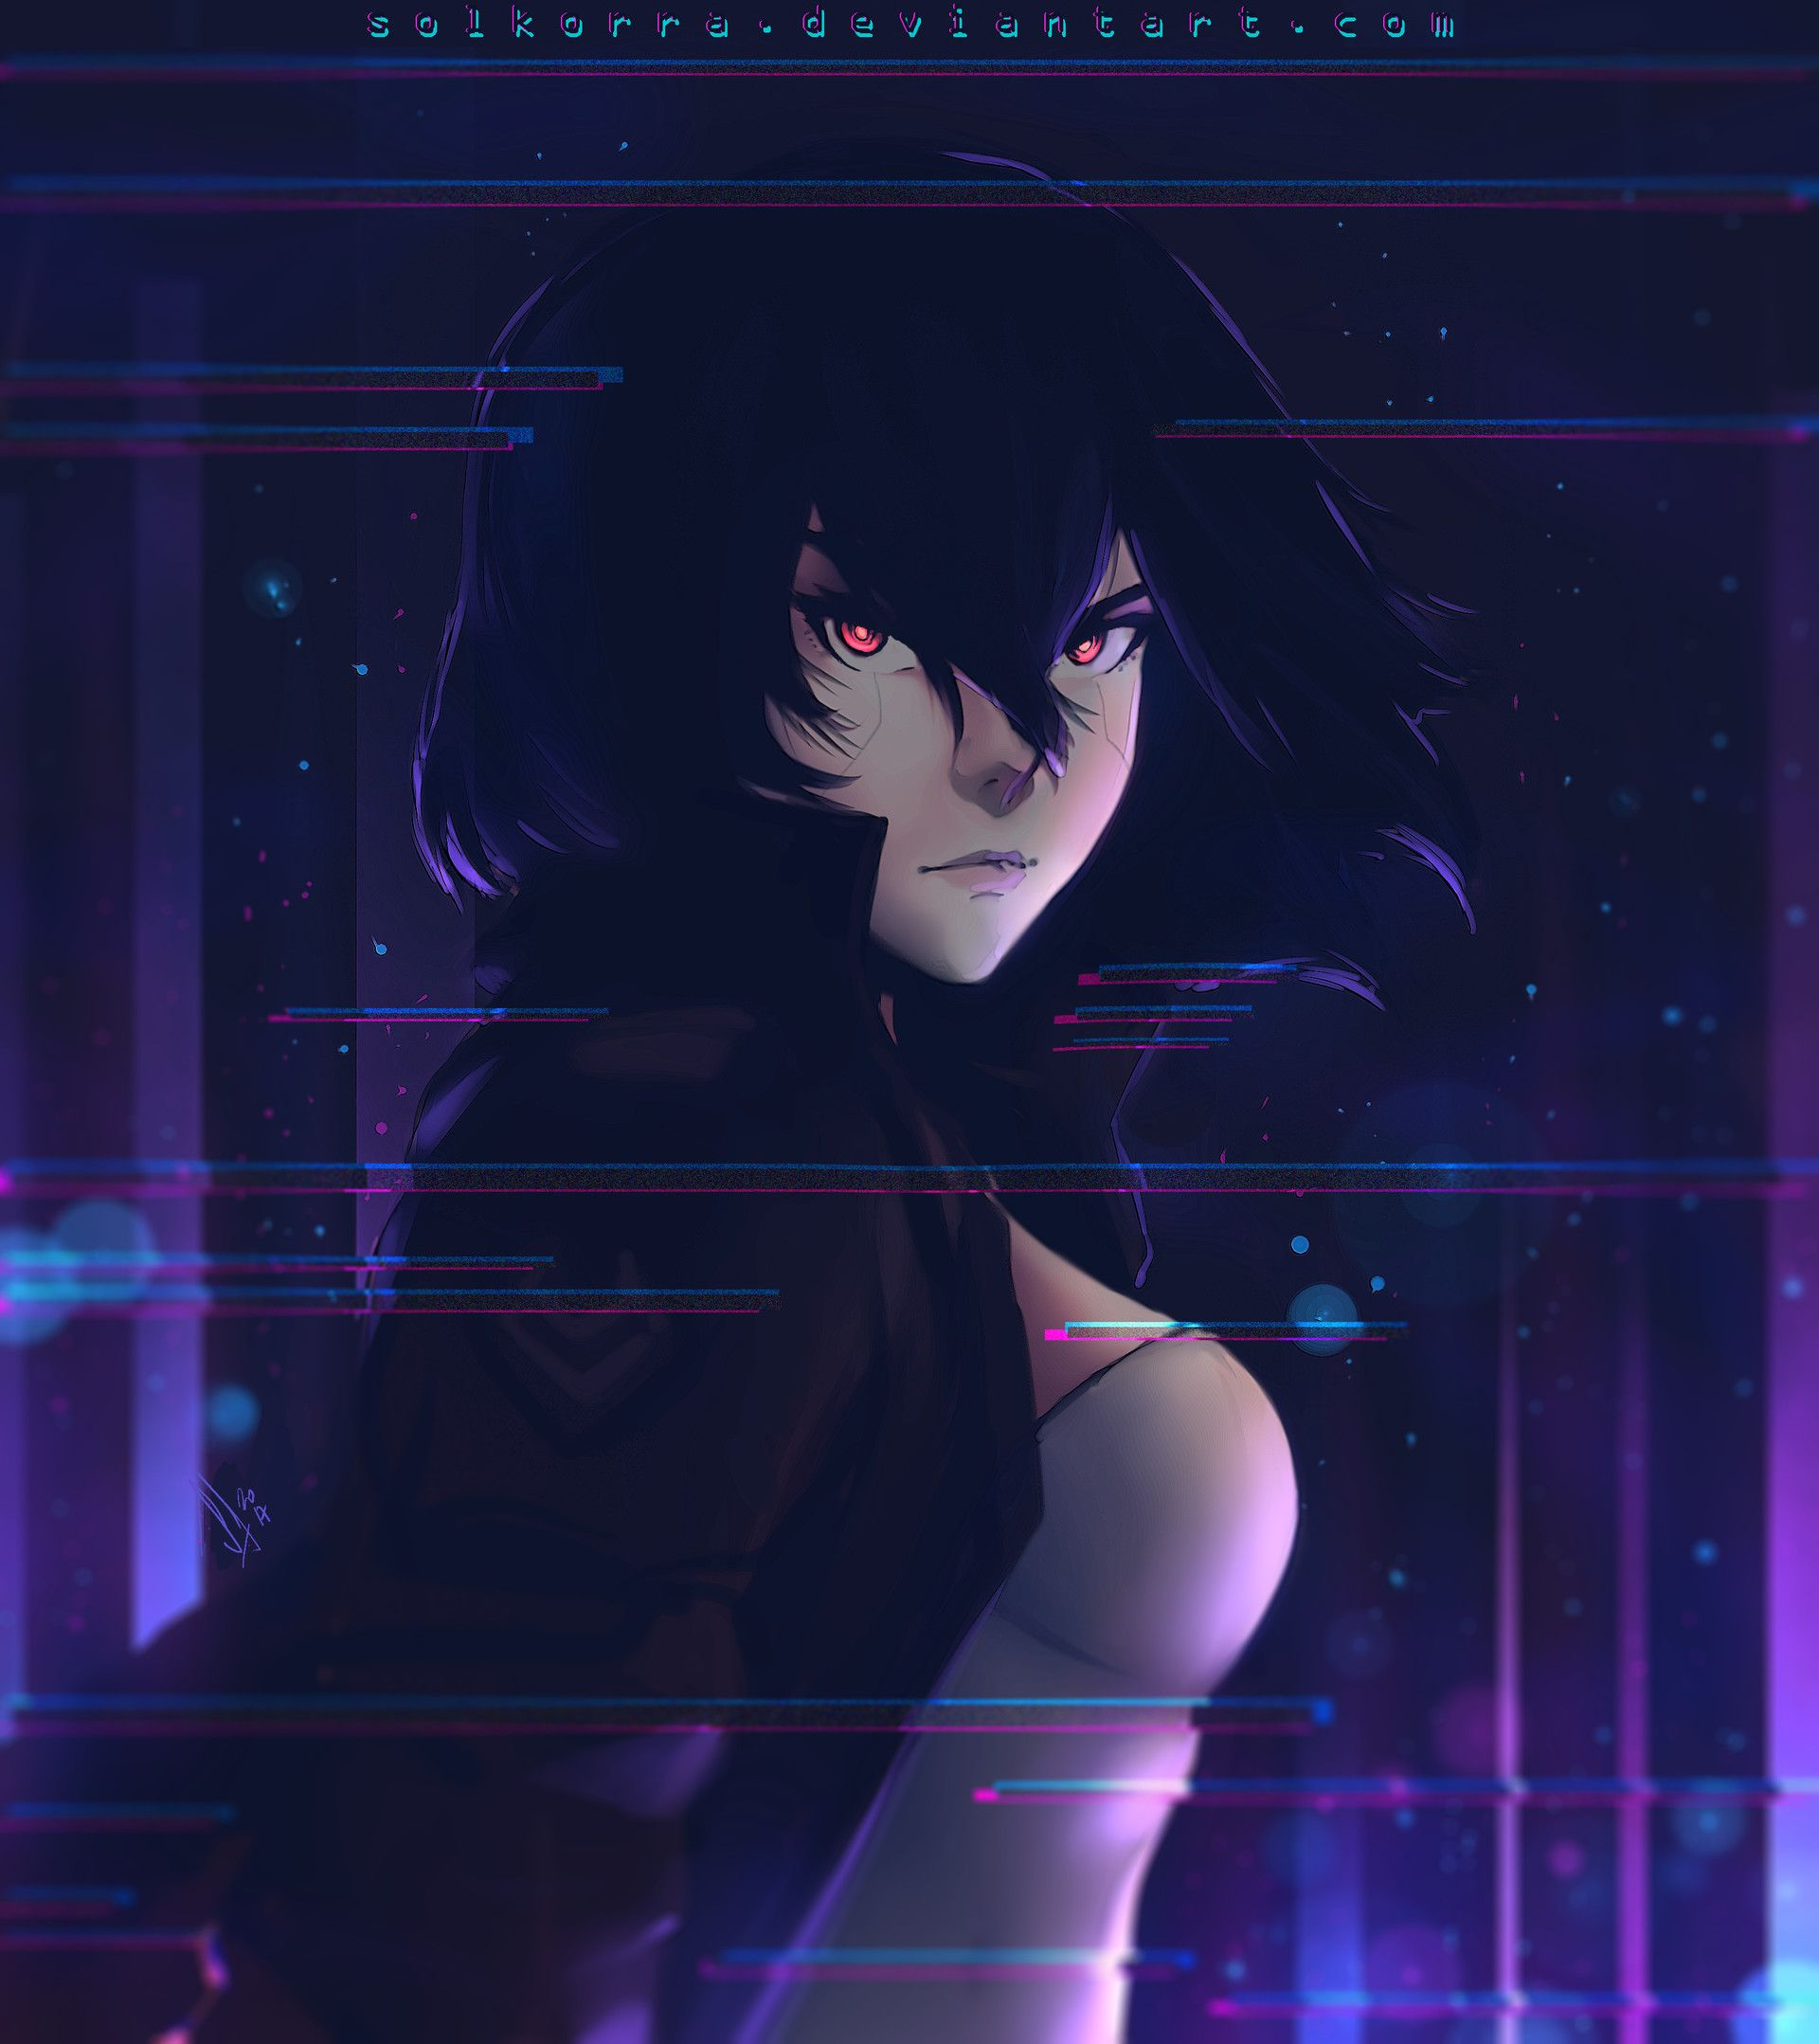 Anime Motoko Kusanagi Ghost In The Shell Sol Ferrari 4460191 Jpeg 1920 2157 Ghost In The Shell Anime Ghost Motoko Kusanagi